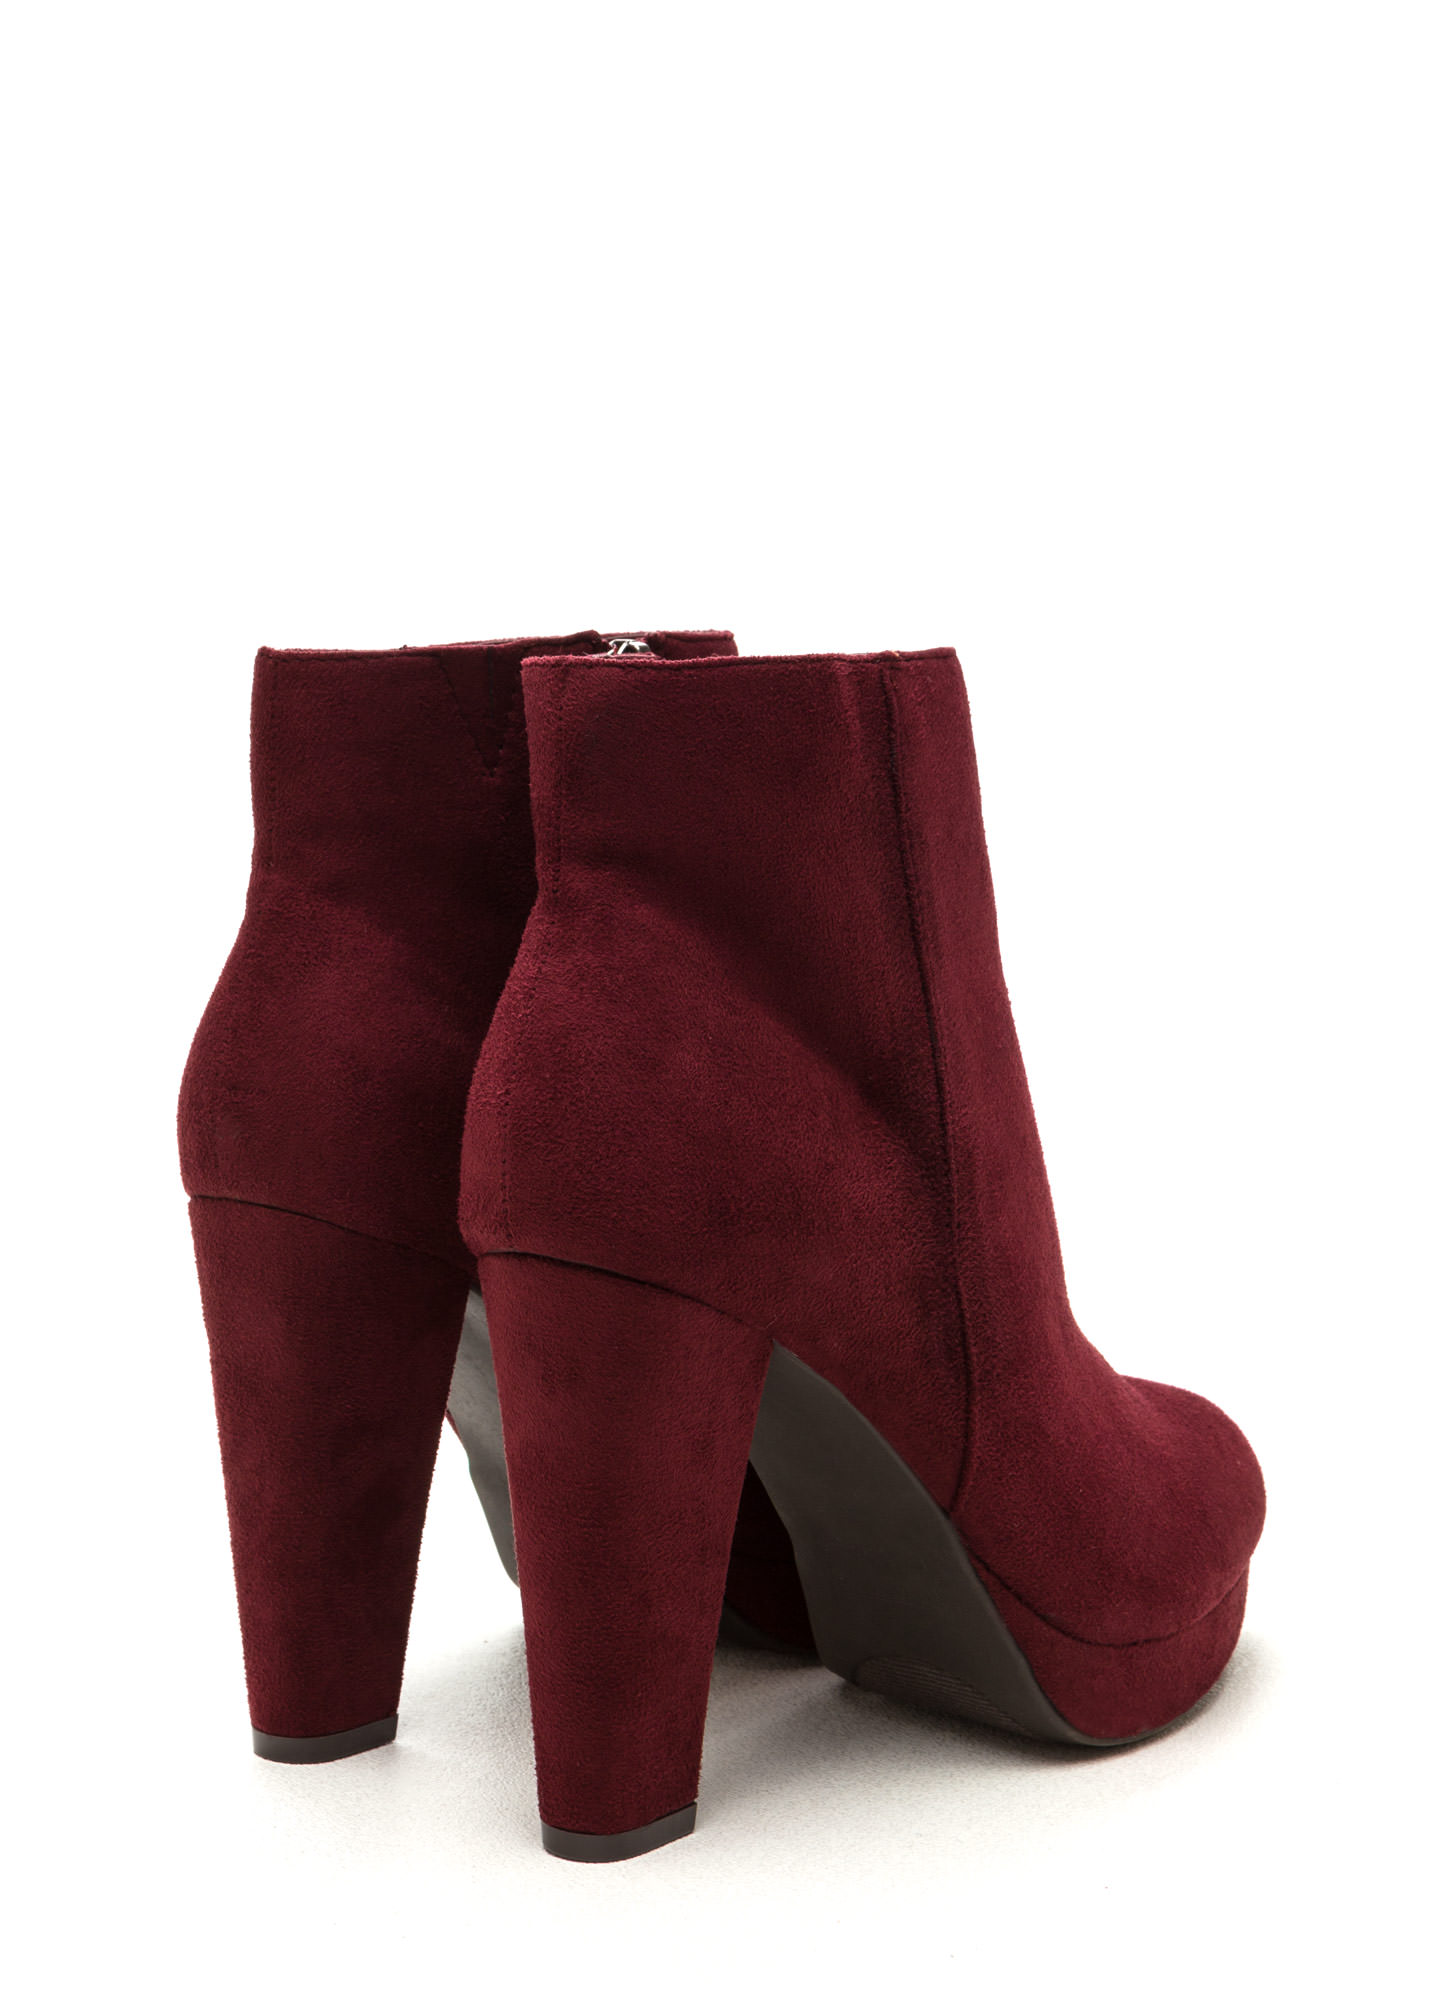 Run This City Faux Suede Booties BURGUNDY